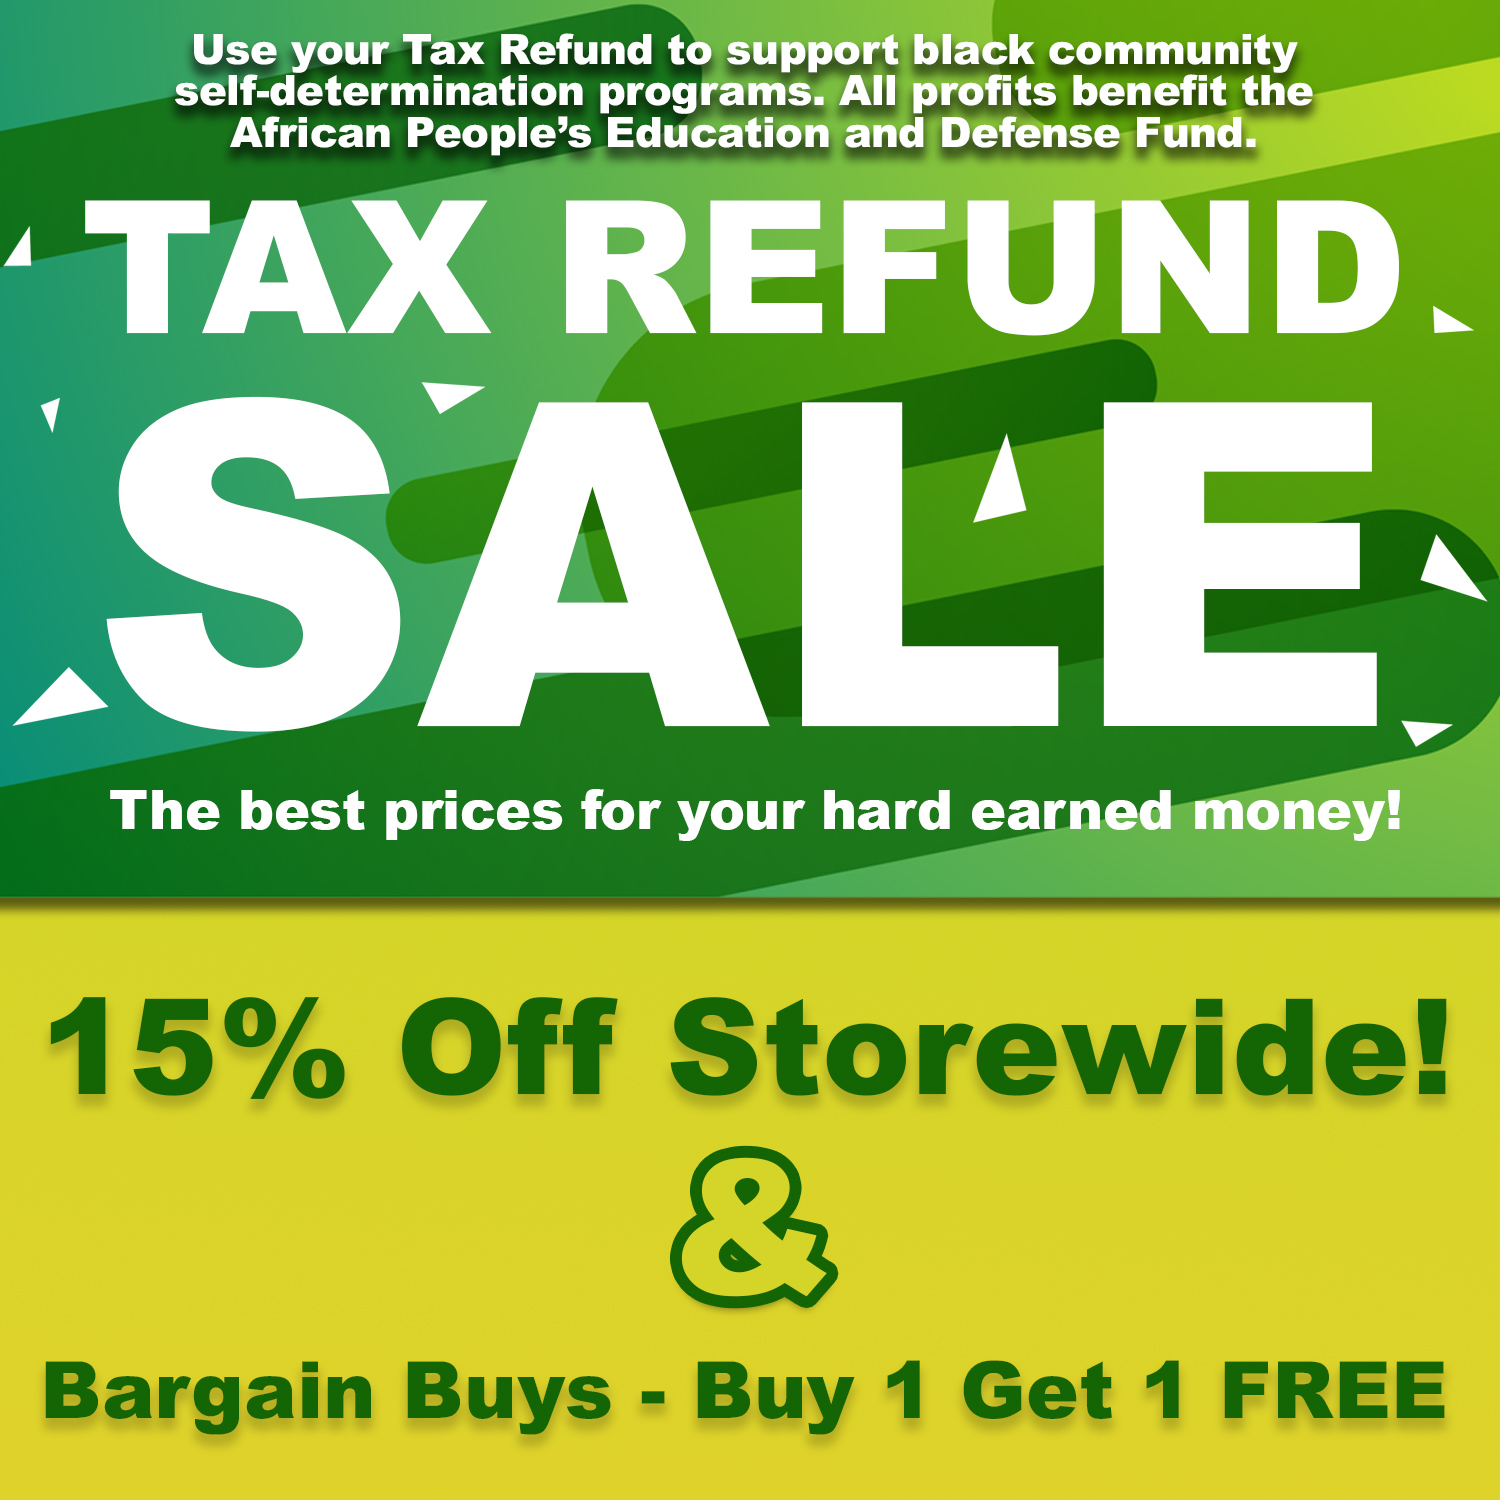 Use Your Tax Refund to Support Black Community Self-determination